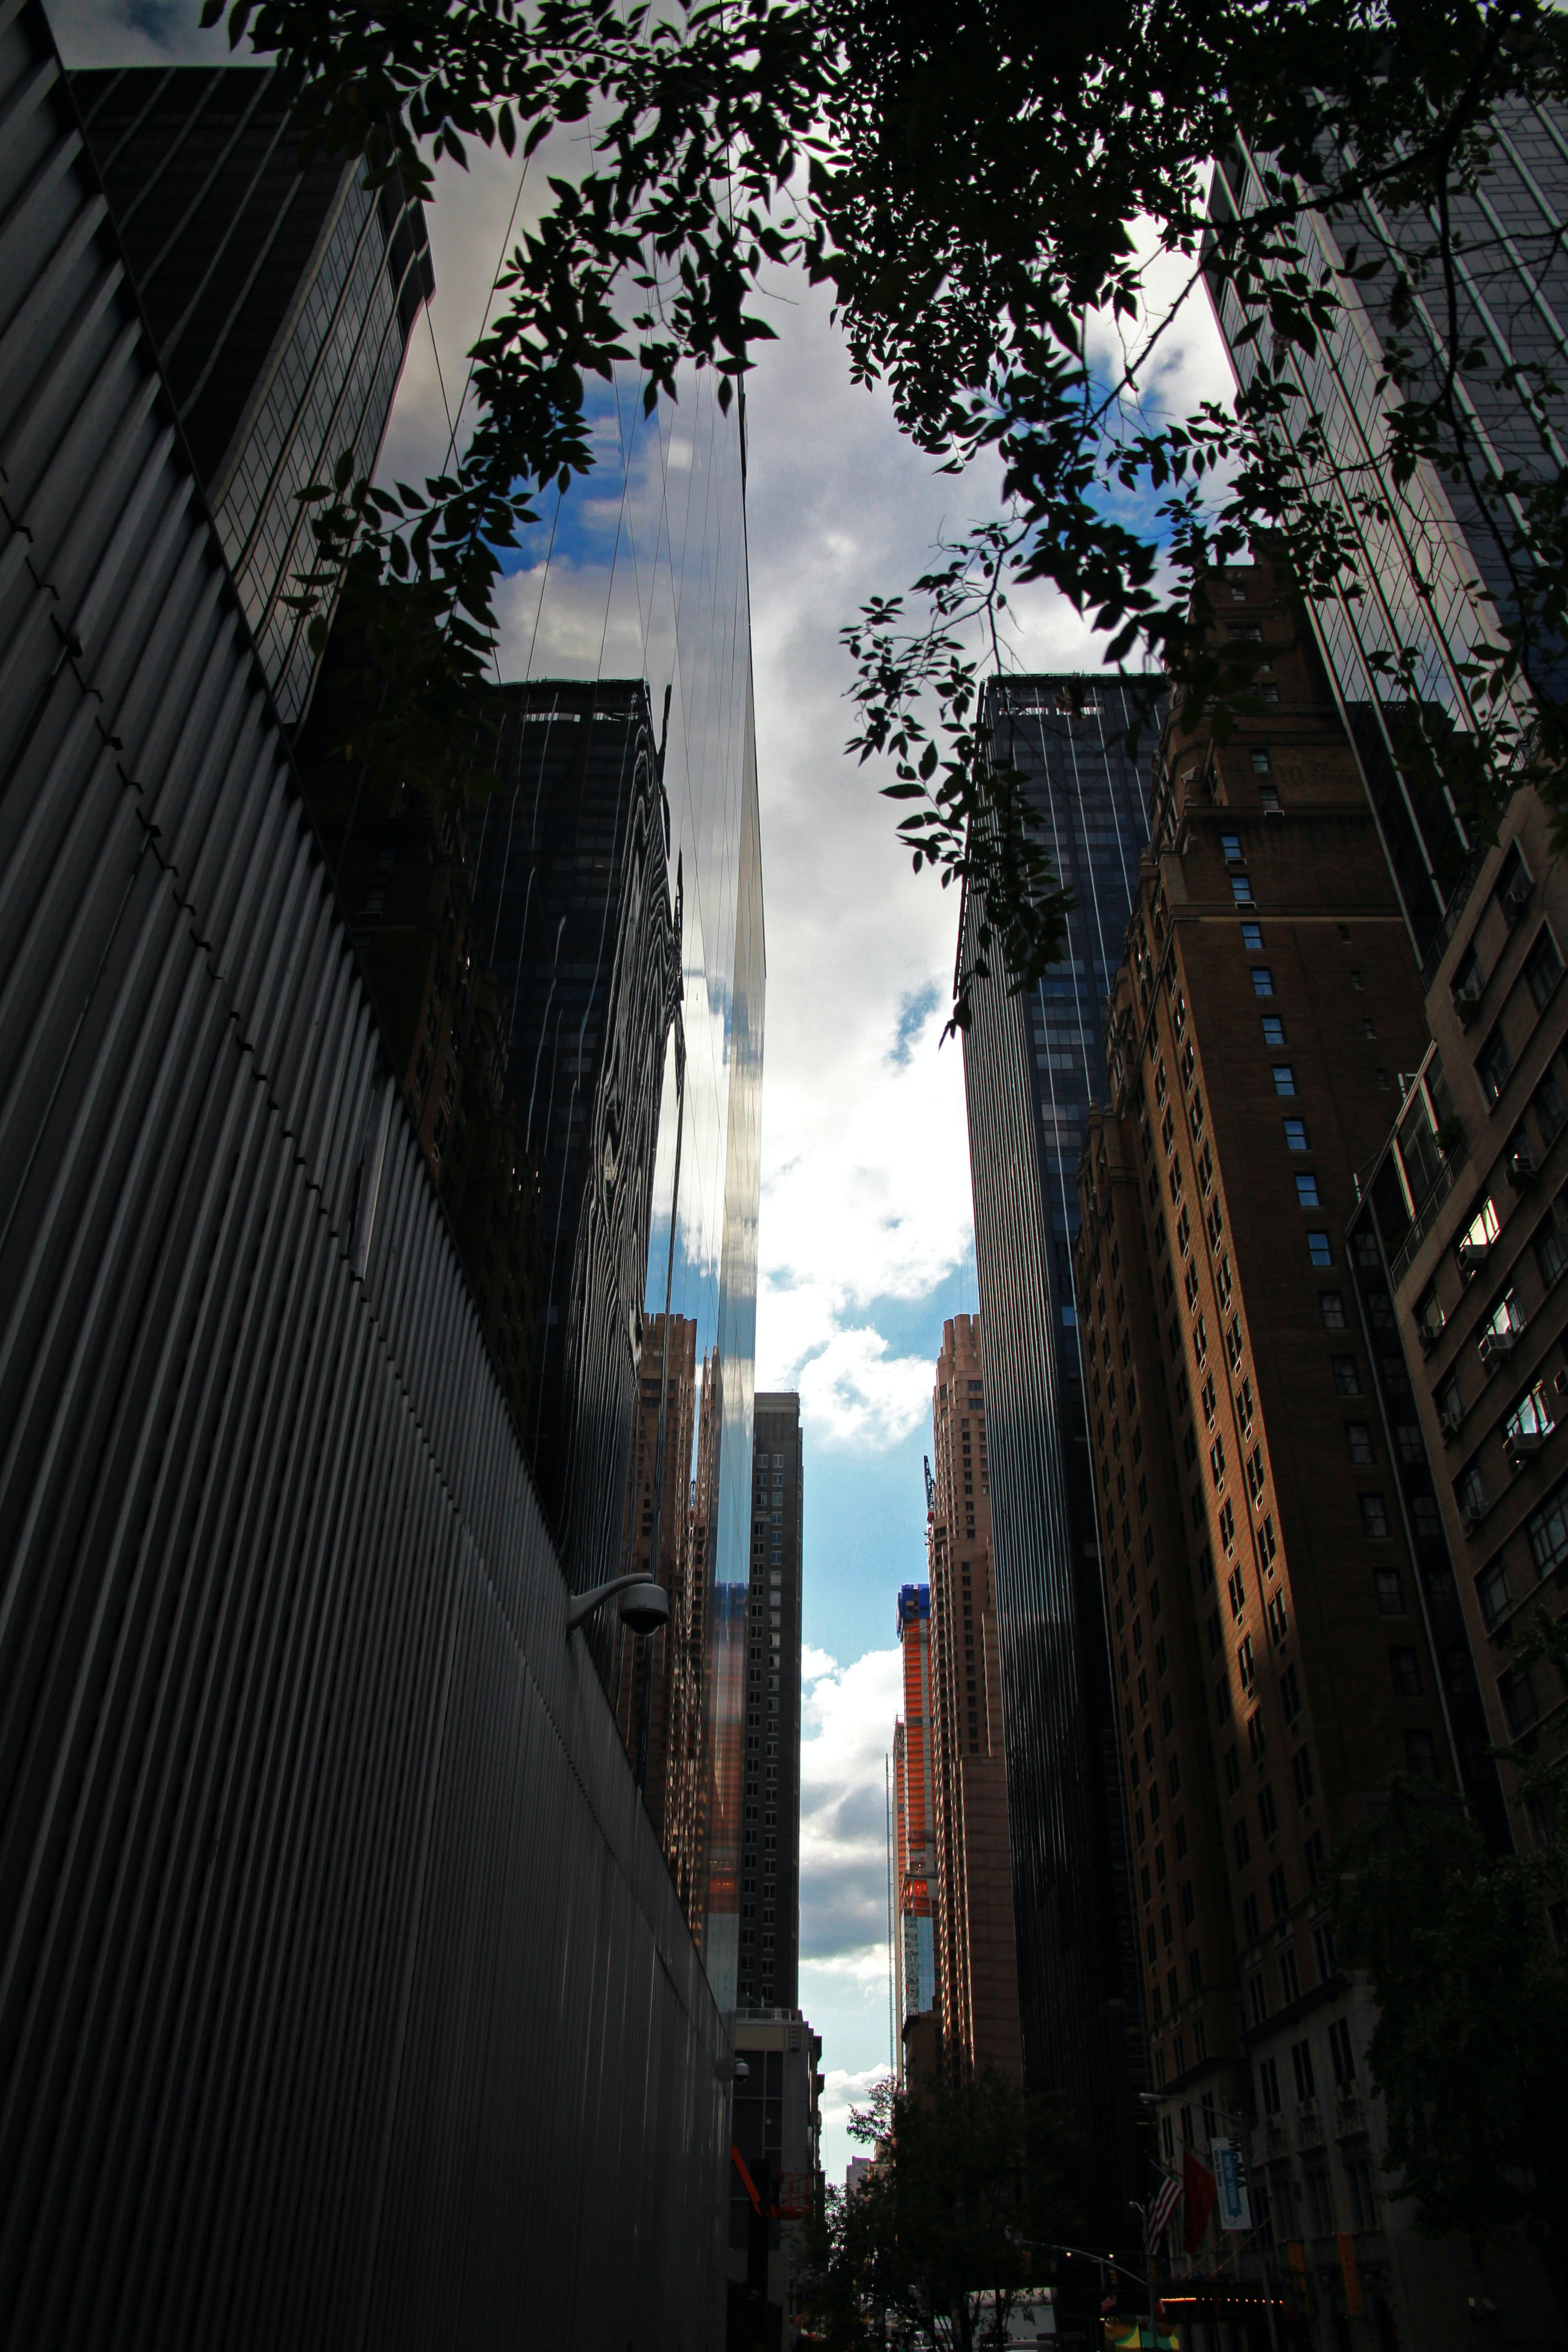 Low-angle Photograph of City Structures